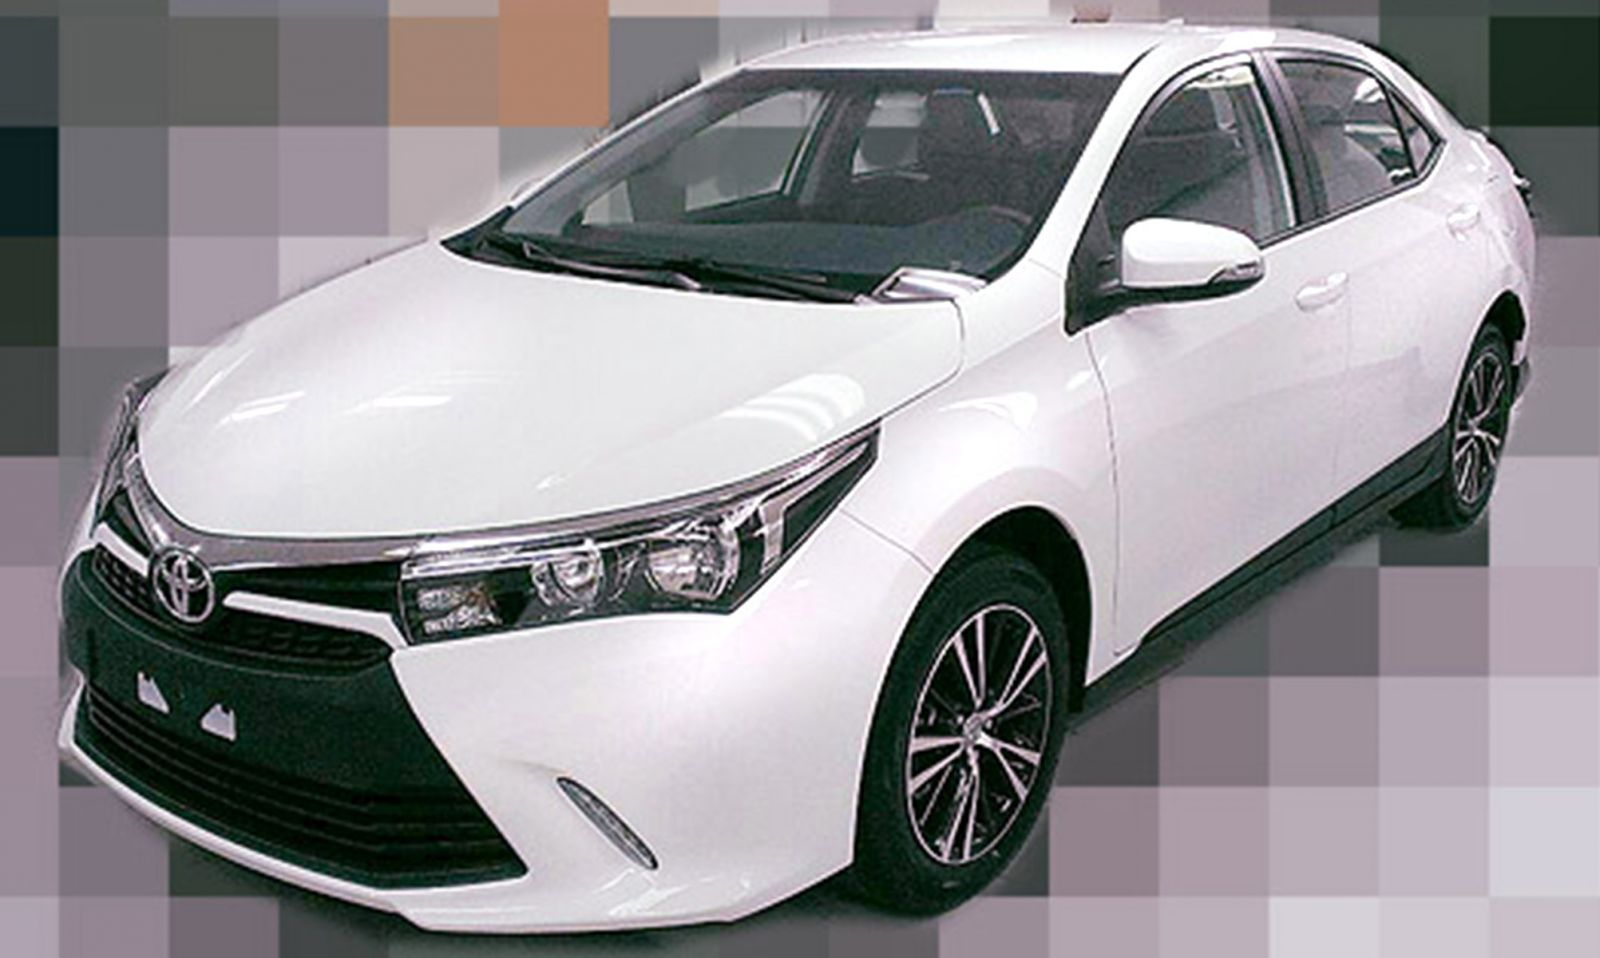 Is This Toyota's Refreshed Corolla Sedan?